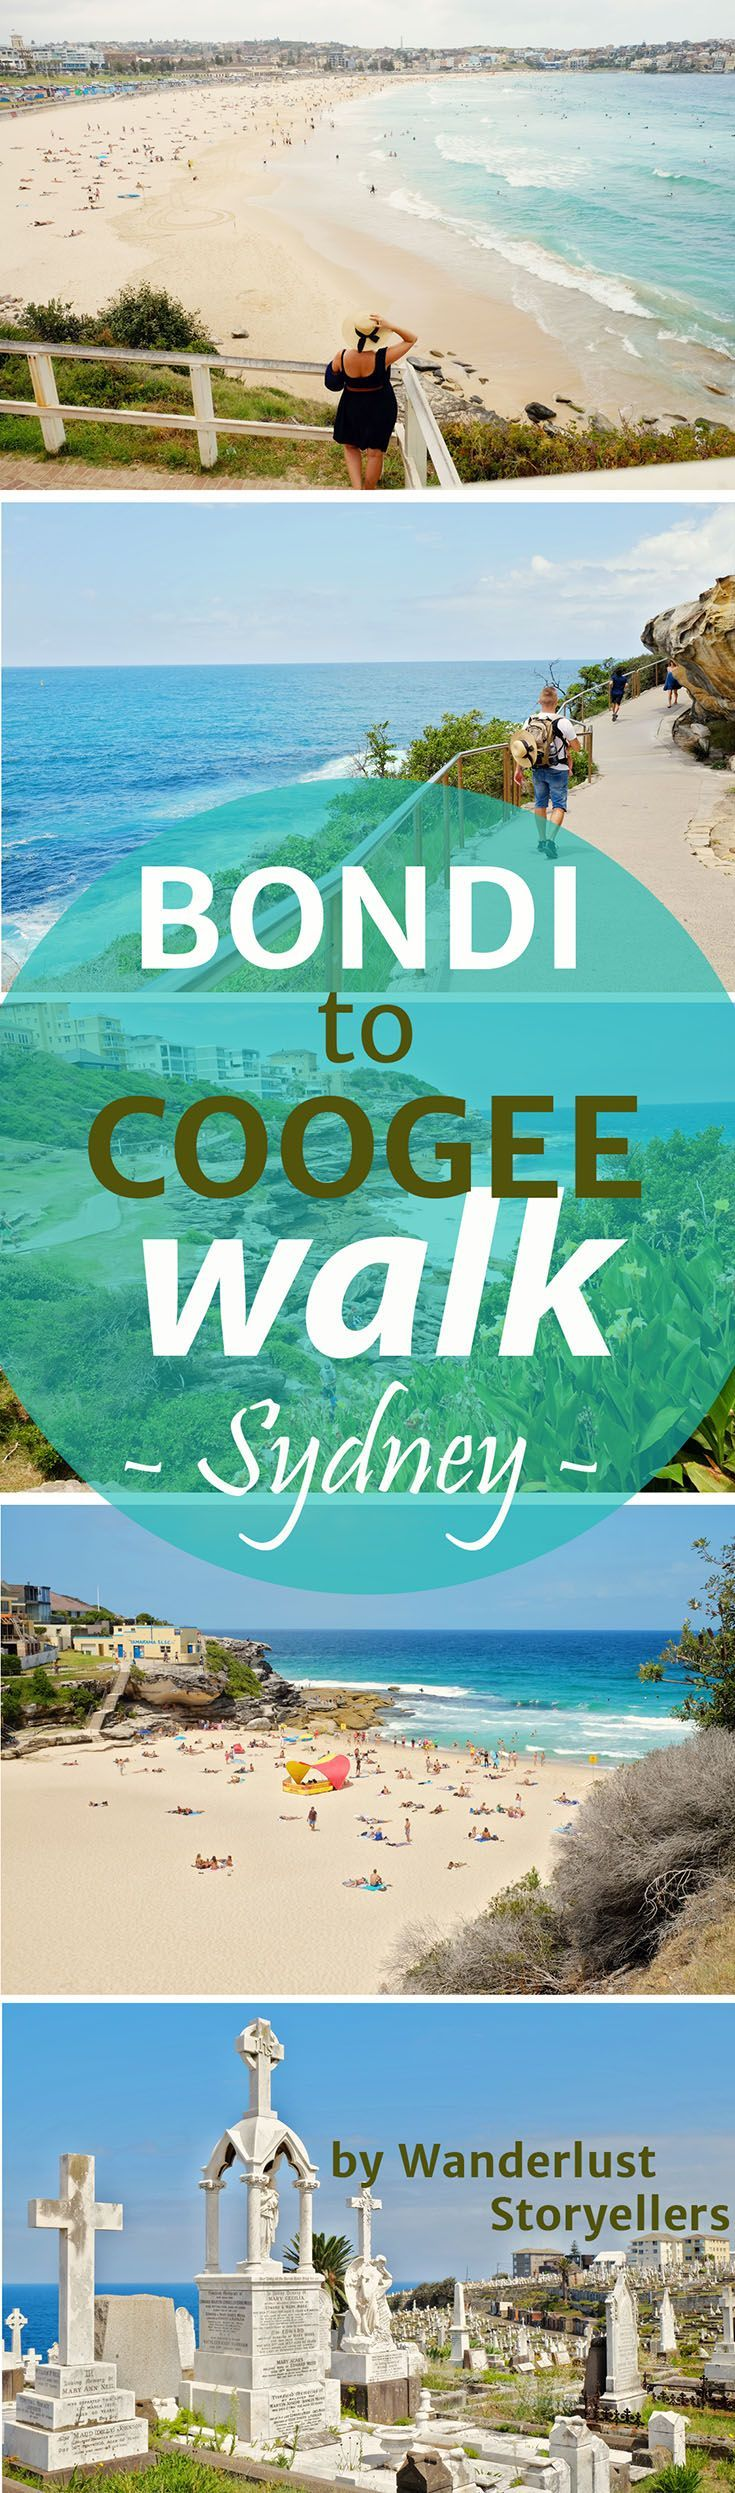 The Bondi to Coogee coastal walk is a 6km walking track that runs along some of the most popular beaches in NSW, Australia.  The walk makes a start at the famous Bondi Beach and you can either choose to follow the track to Bronte Beach or if you are keen, we suggest you follow the trail all the way to Coogee Beach.